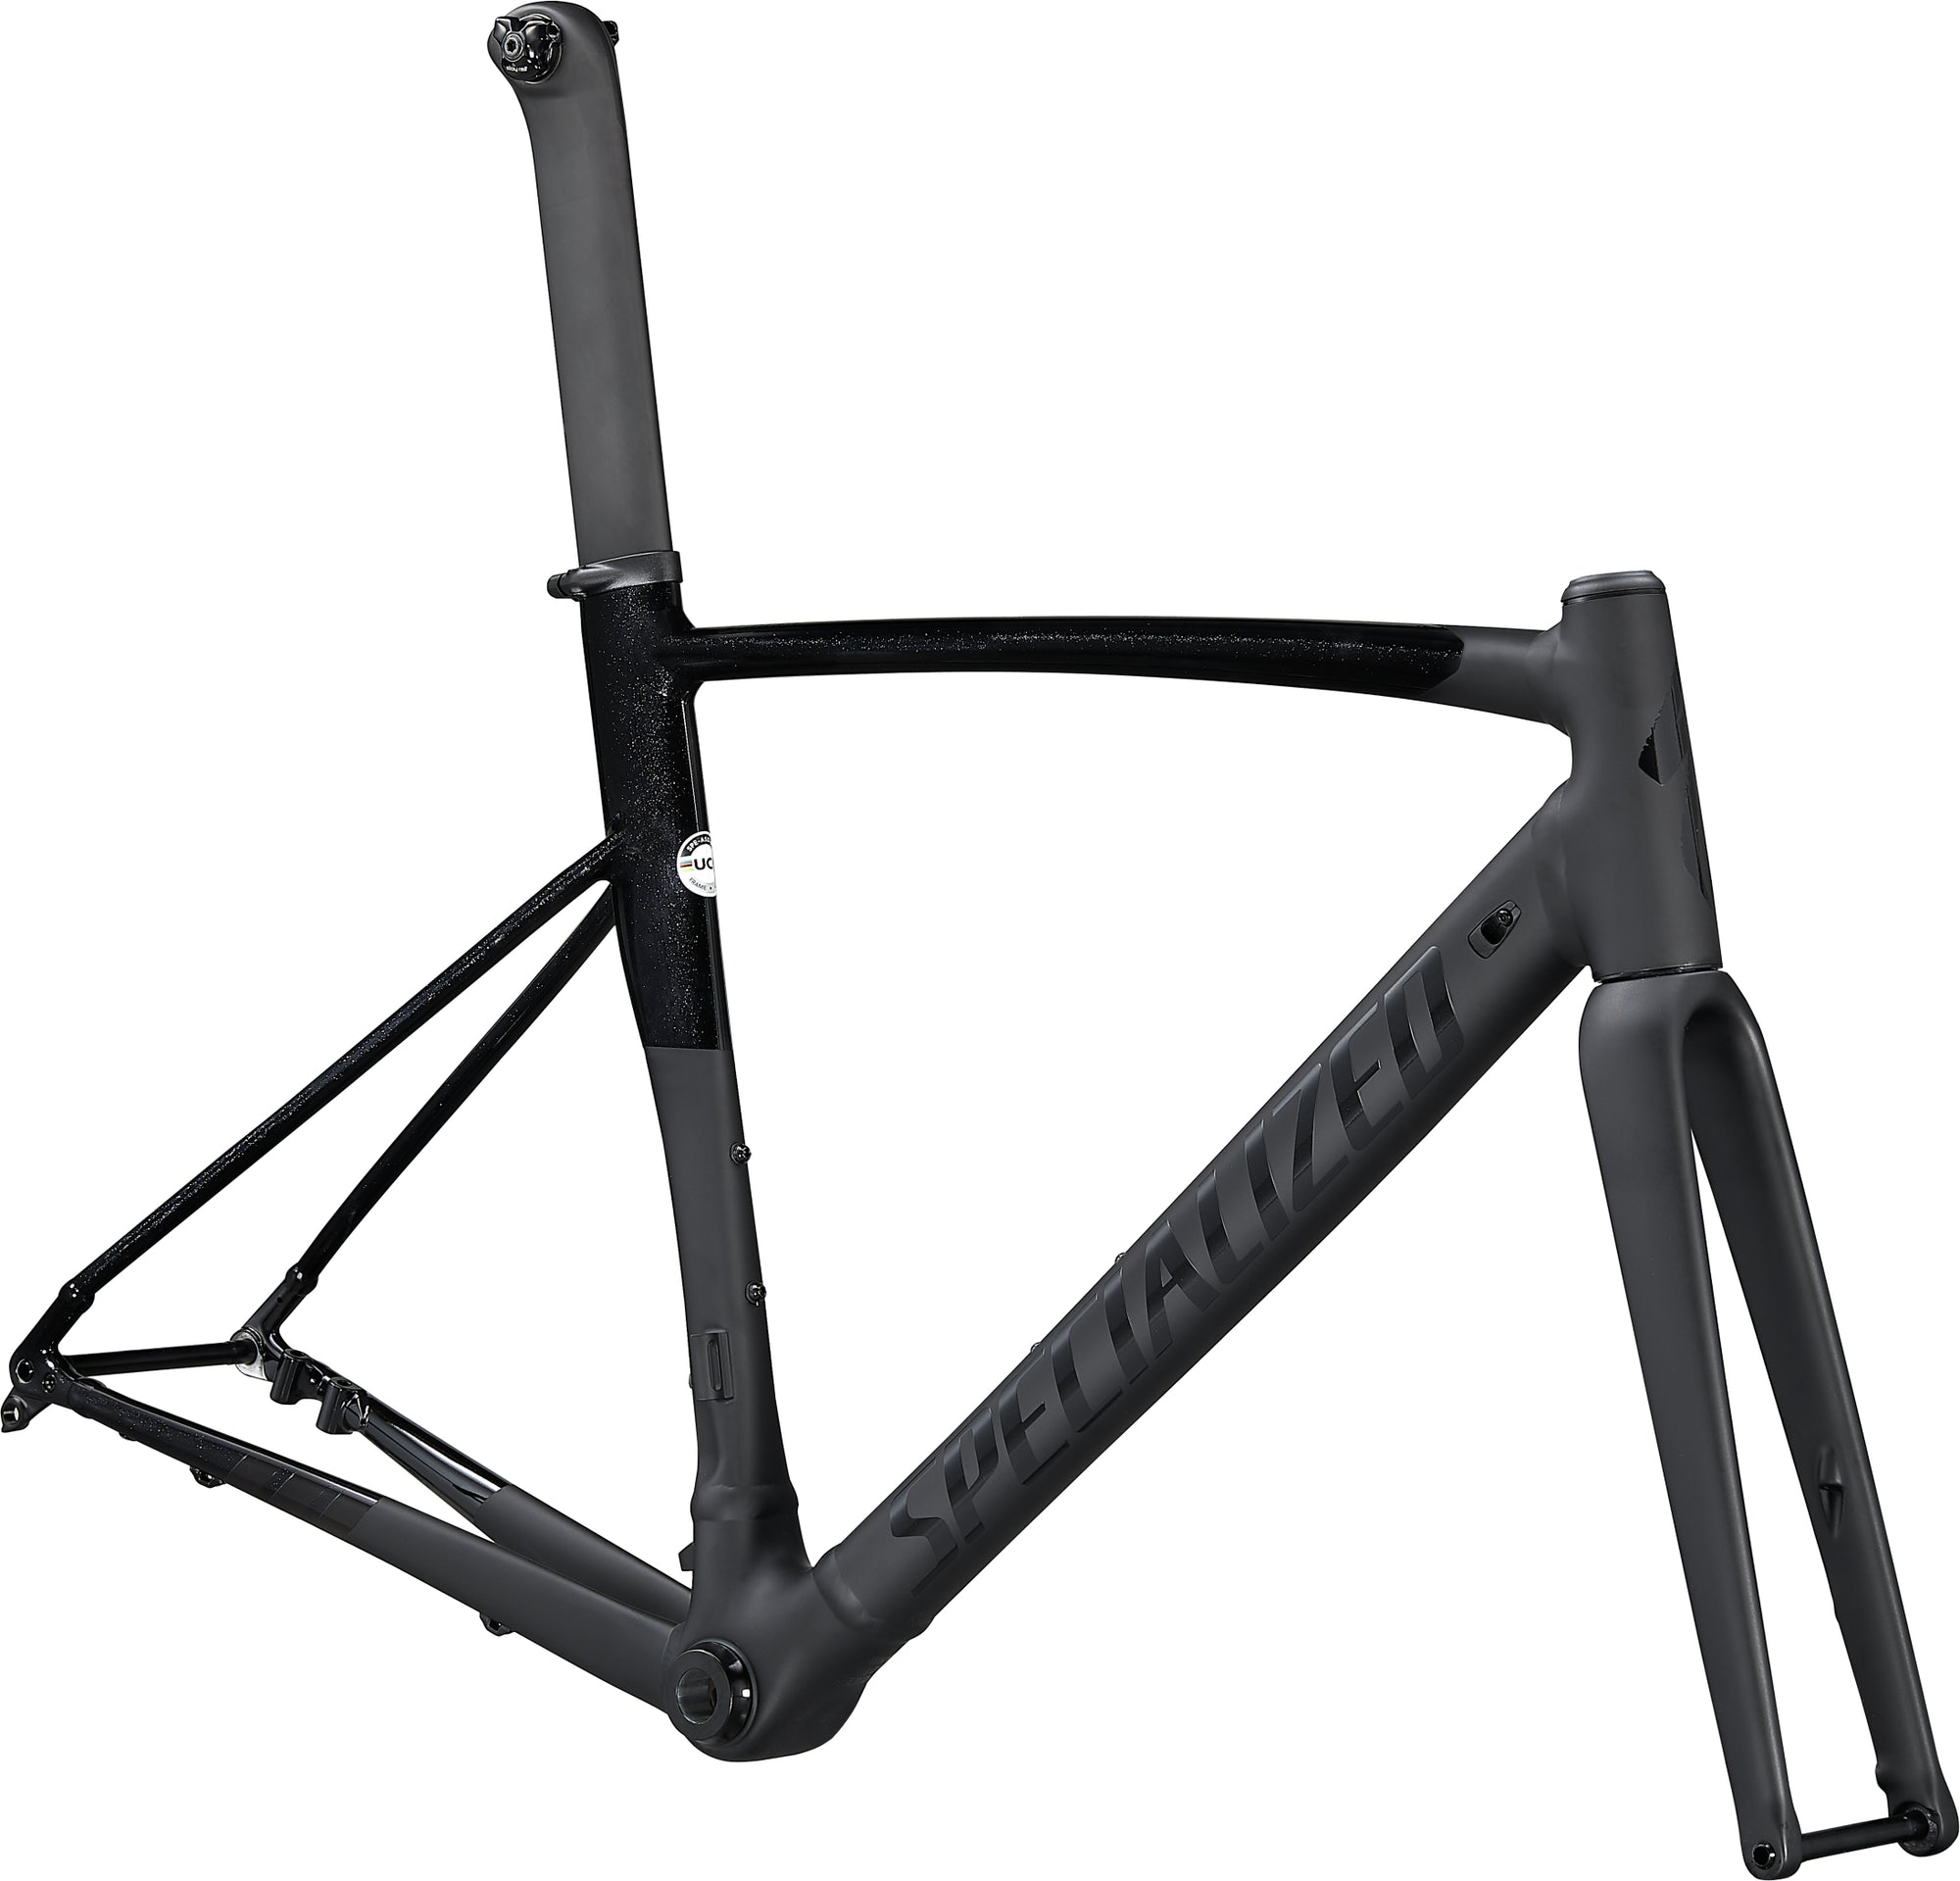 Allez Sprint Disc Frameset - Sagan Collection: Deconstructivism